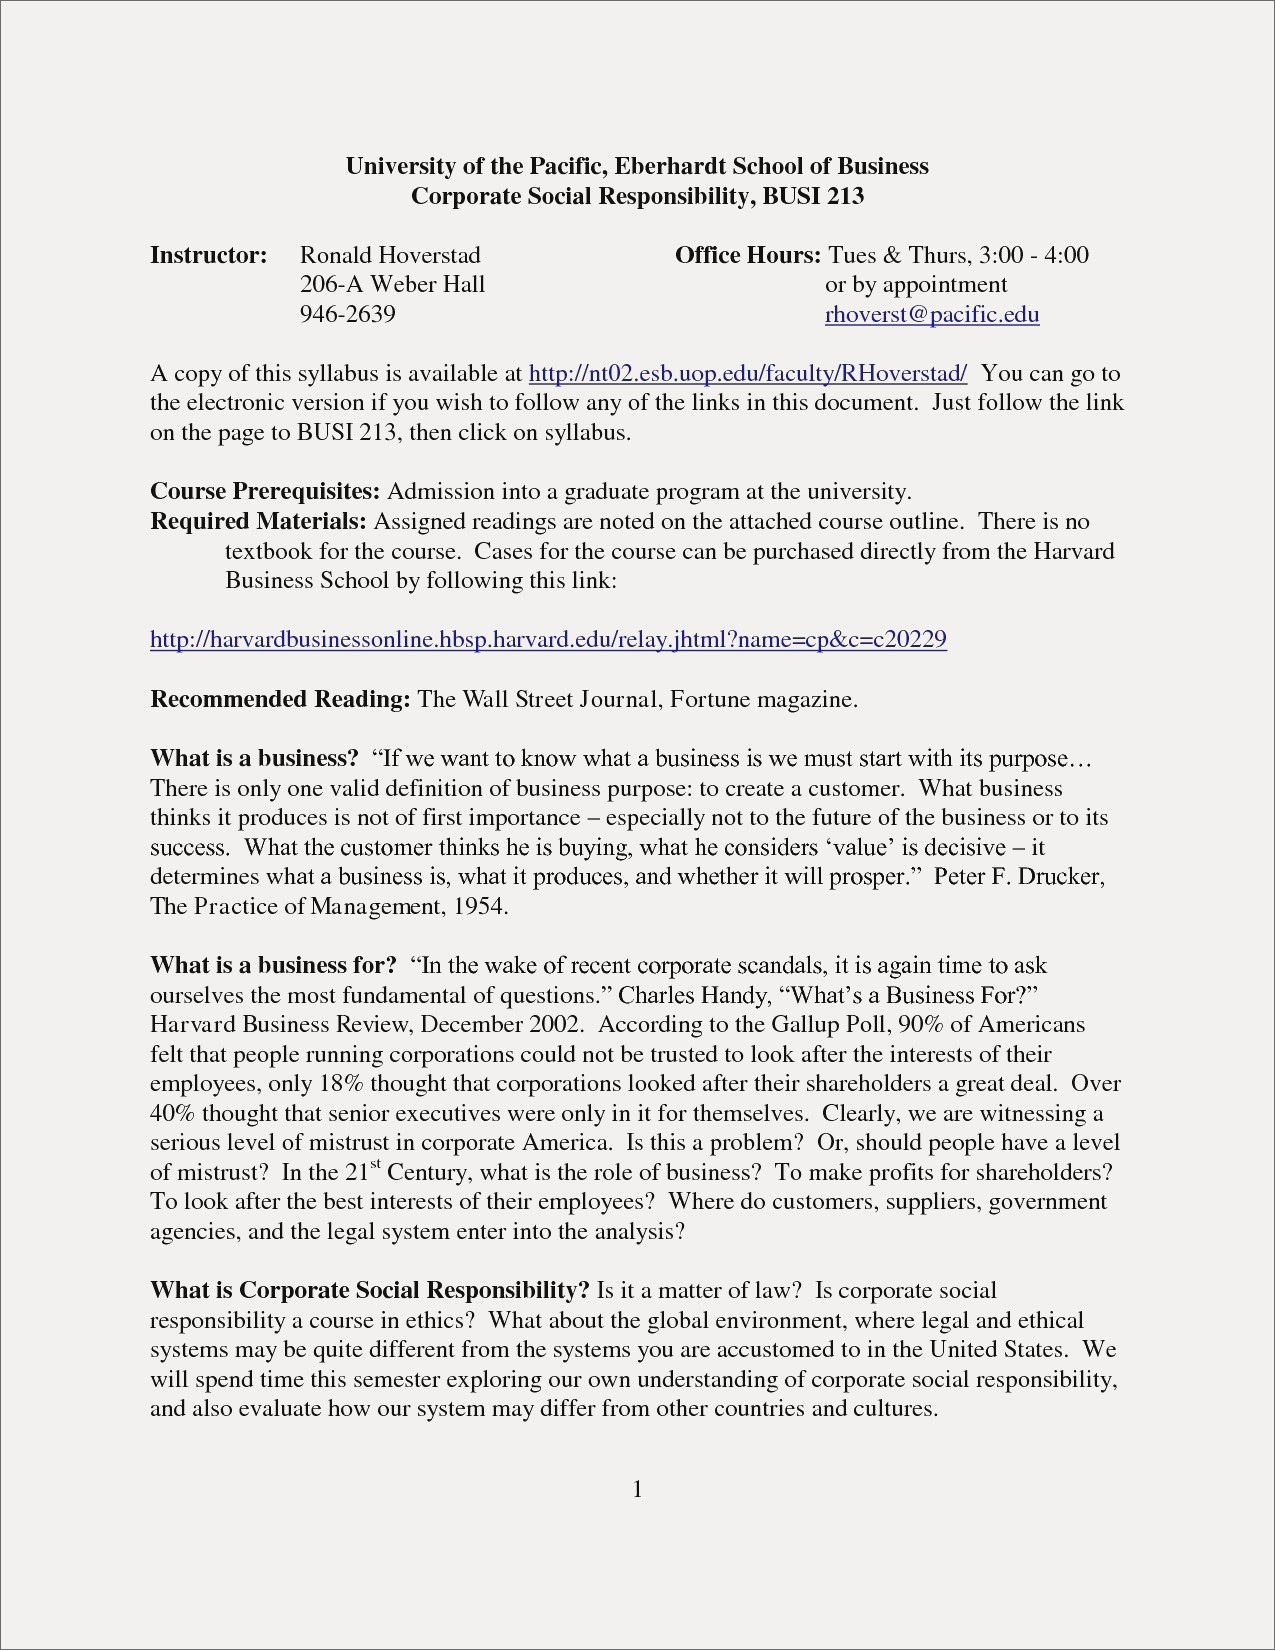 Resume Law School - Legal Resume Template New Law Student Resume Template Best Resume